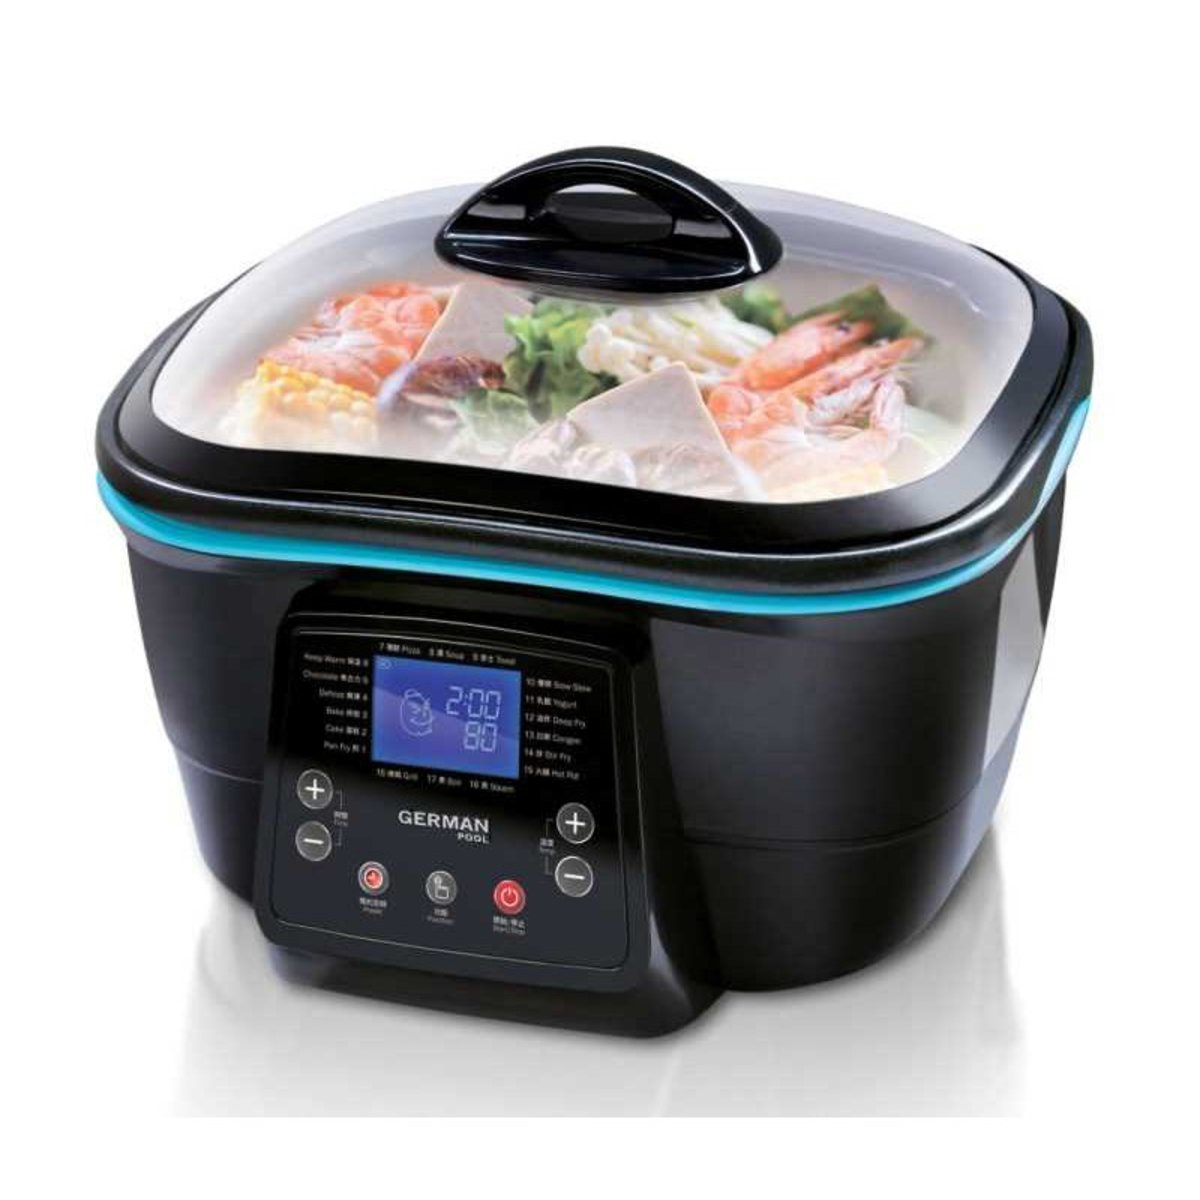 DFC818 Auto-Power Switch Multifunctional Health Cooker - Authorized goods